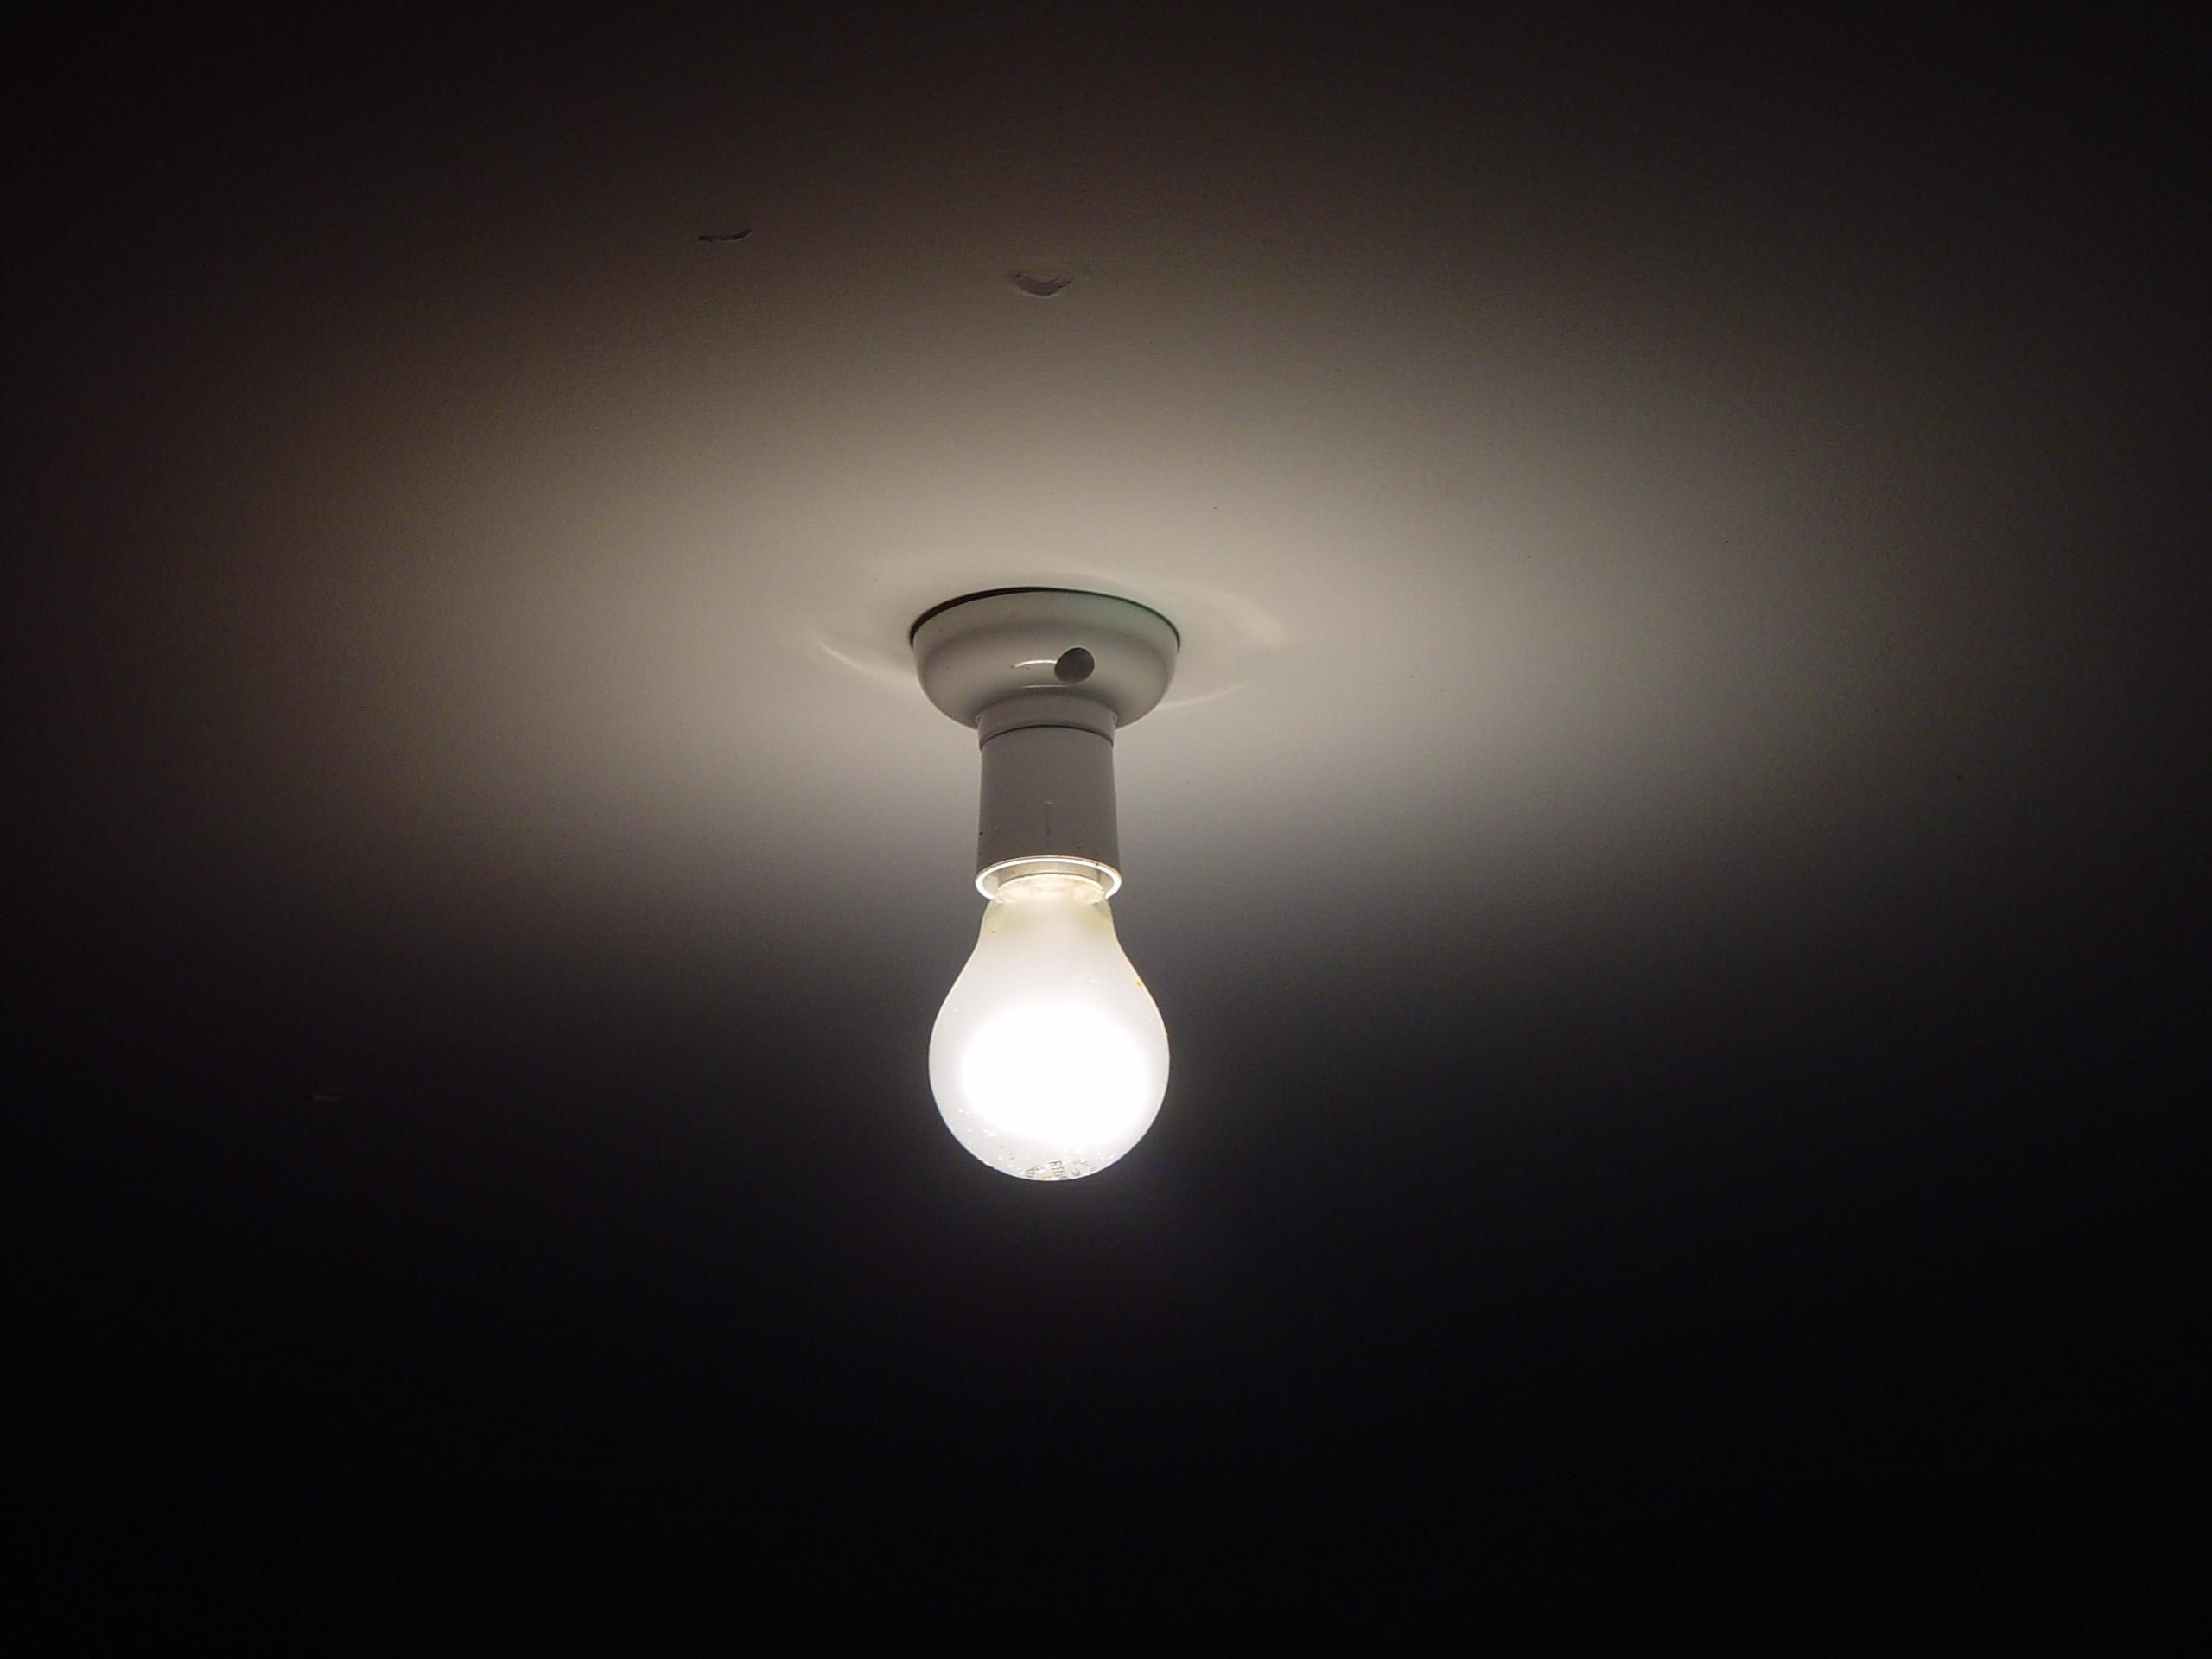 File:Light bulb.jpg - Wikimedia Commons